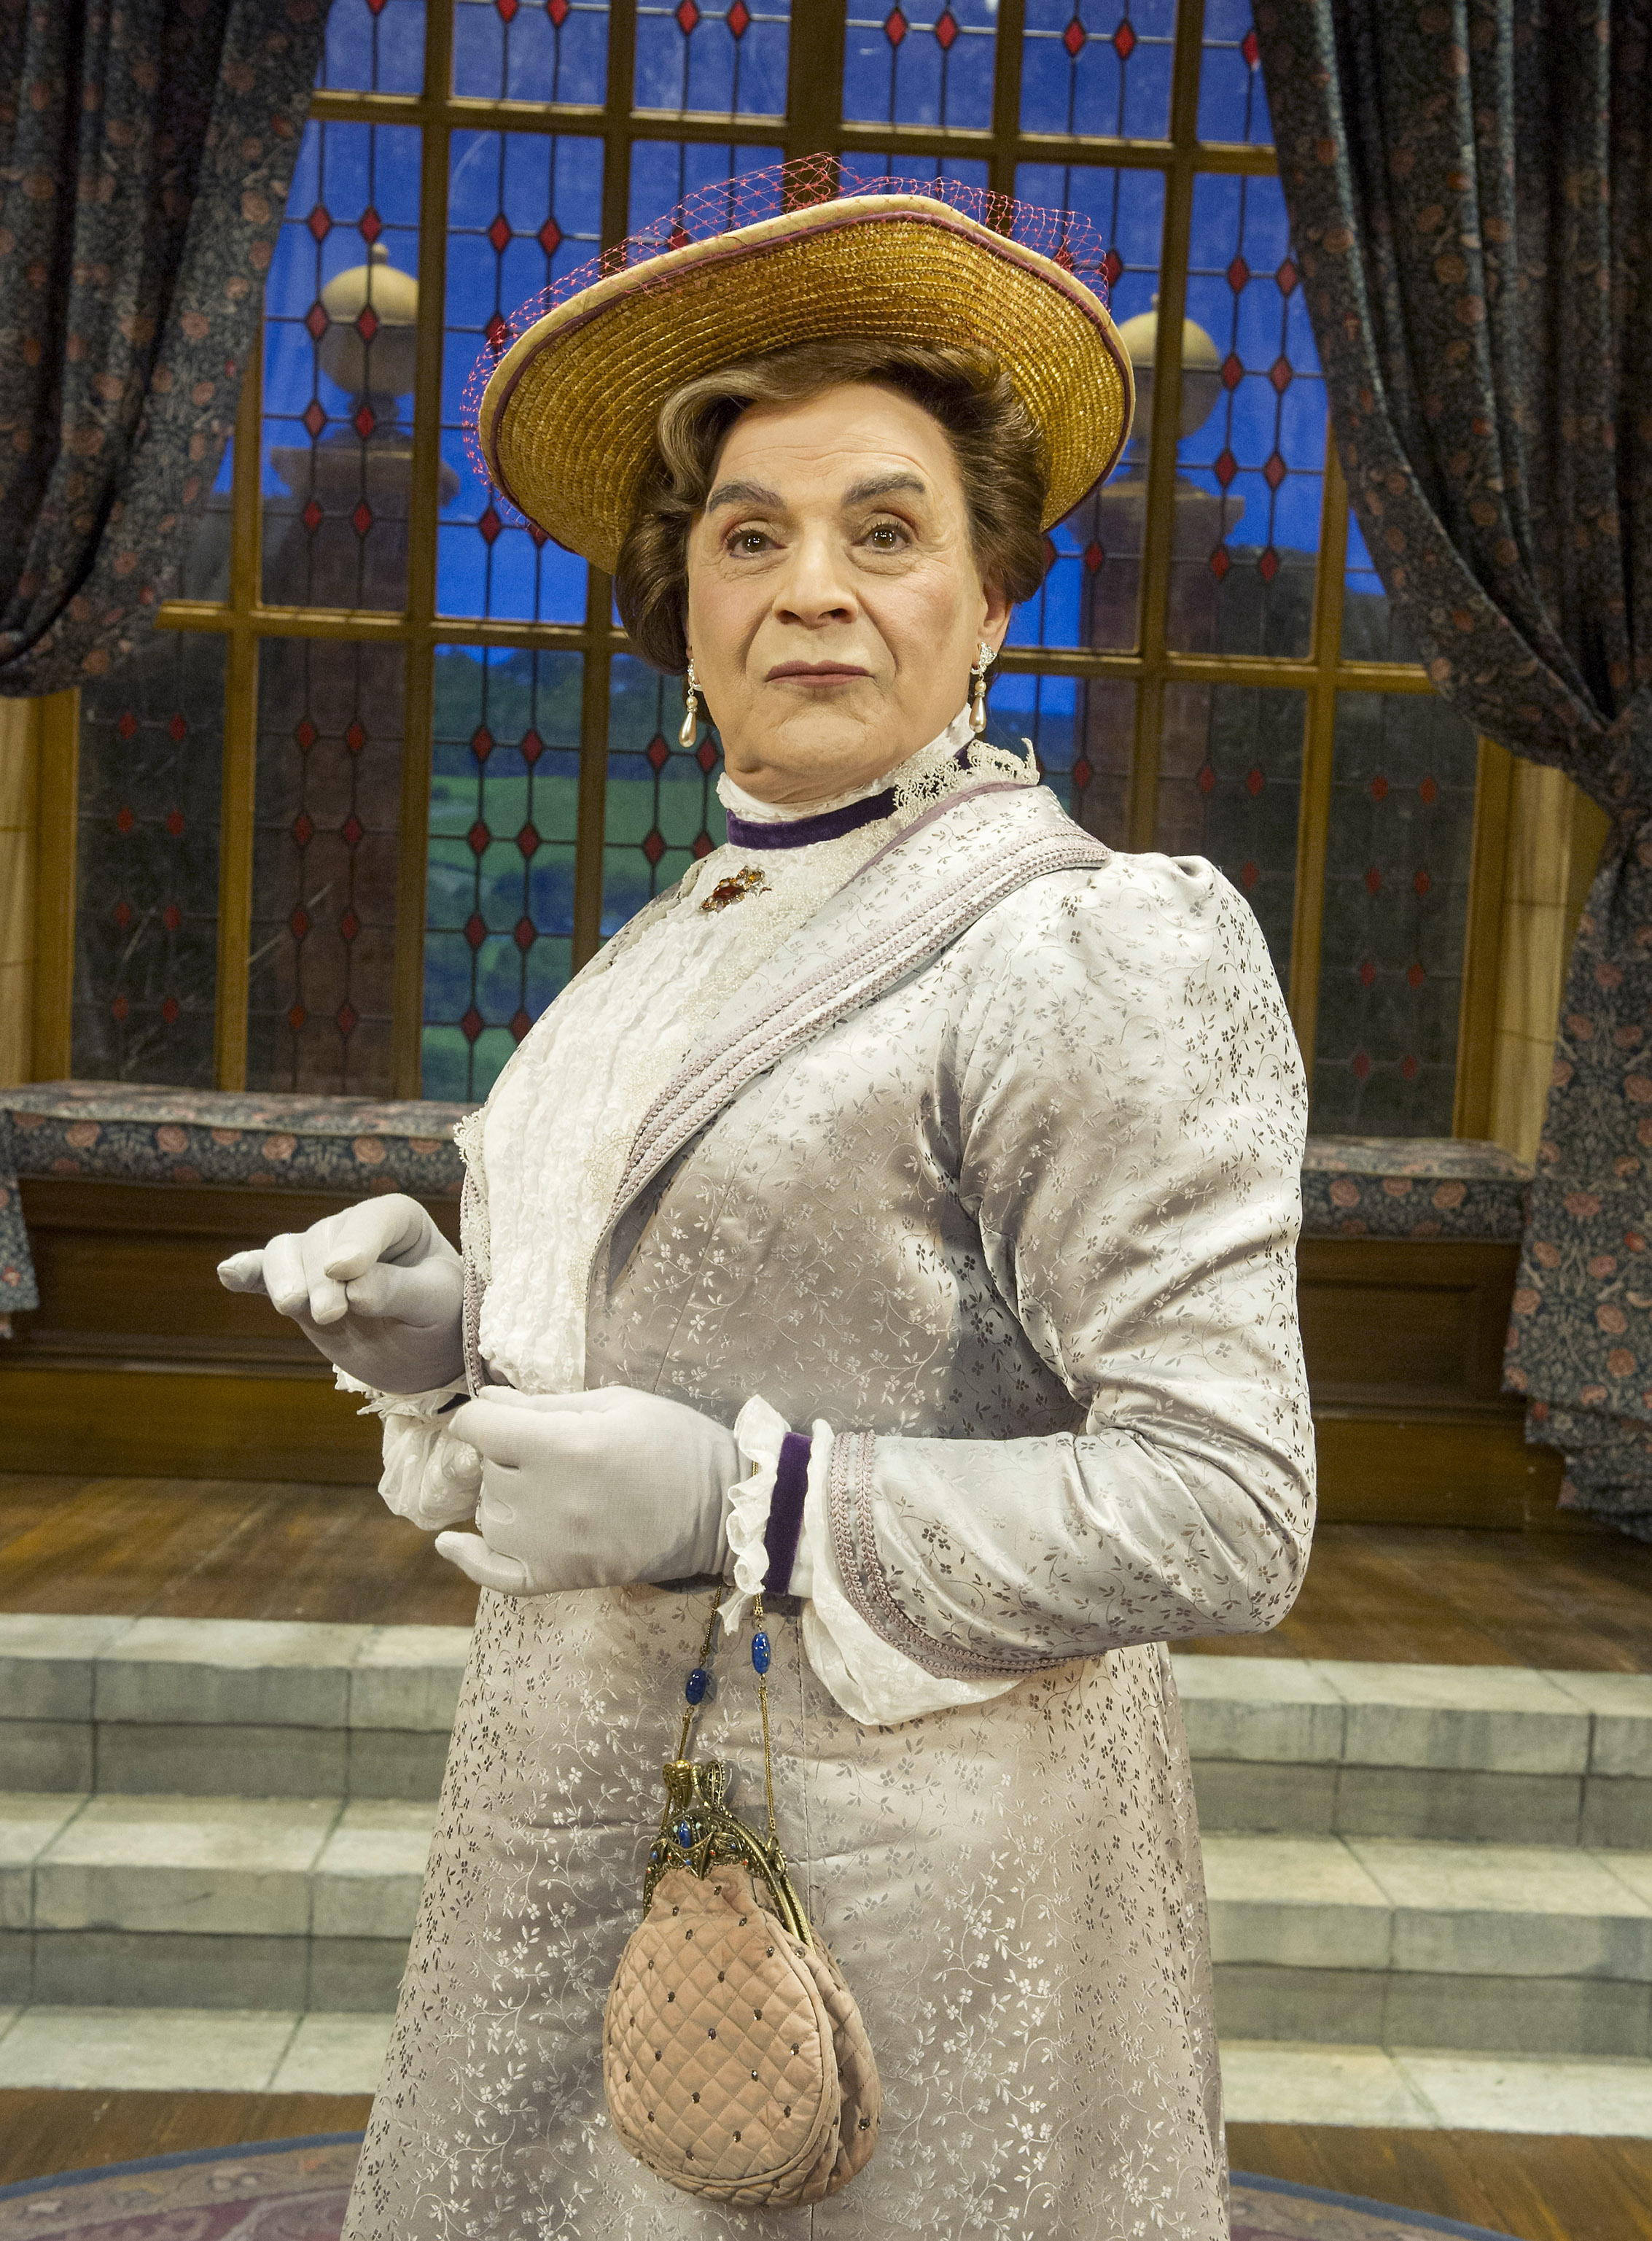 review the imporance of being earnest david suchet as lady bracknell